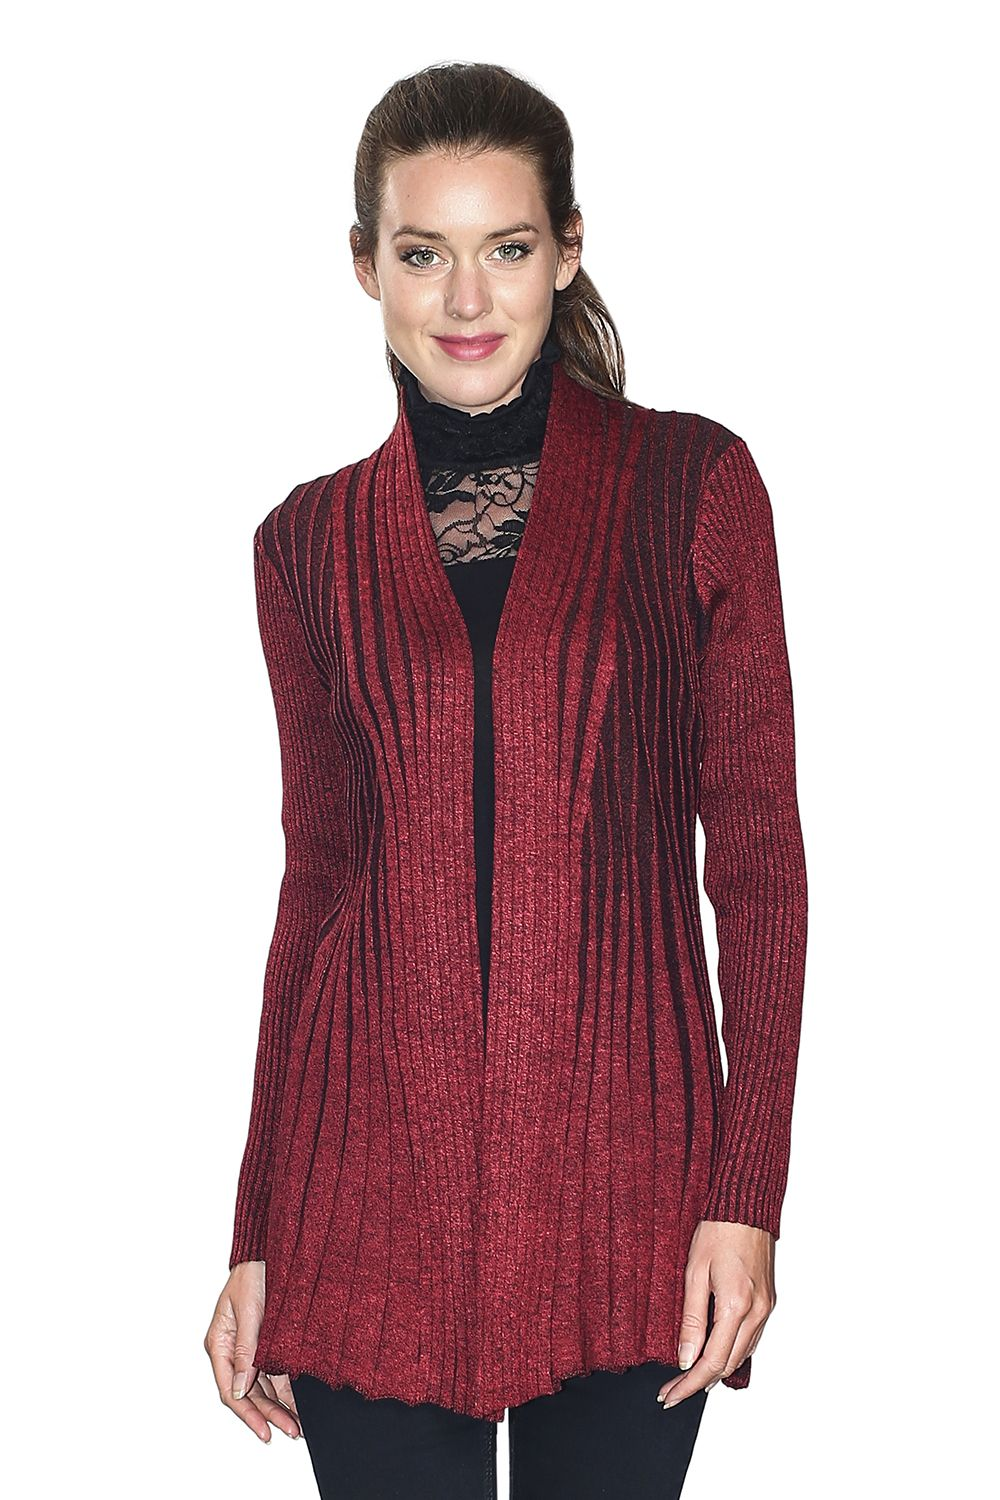 Assuili Long Sleeve Textured Mesh Open Cardigan (Large Fit) in Red